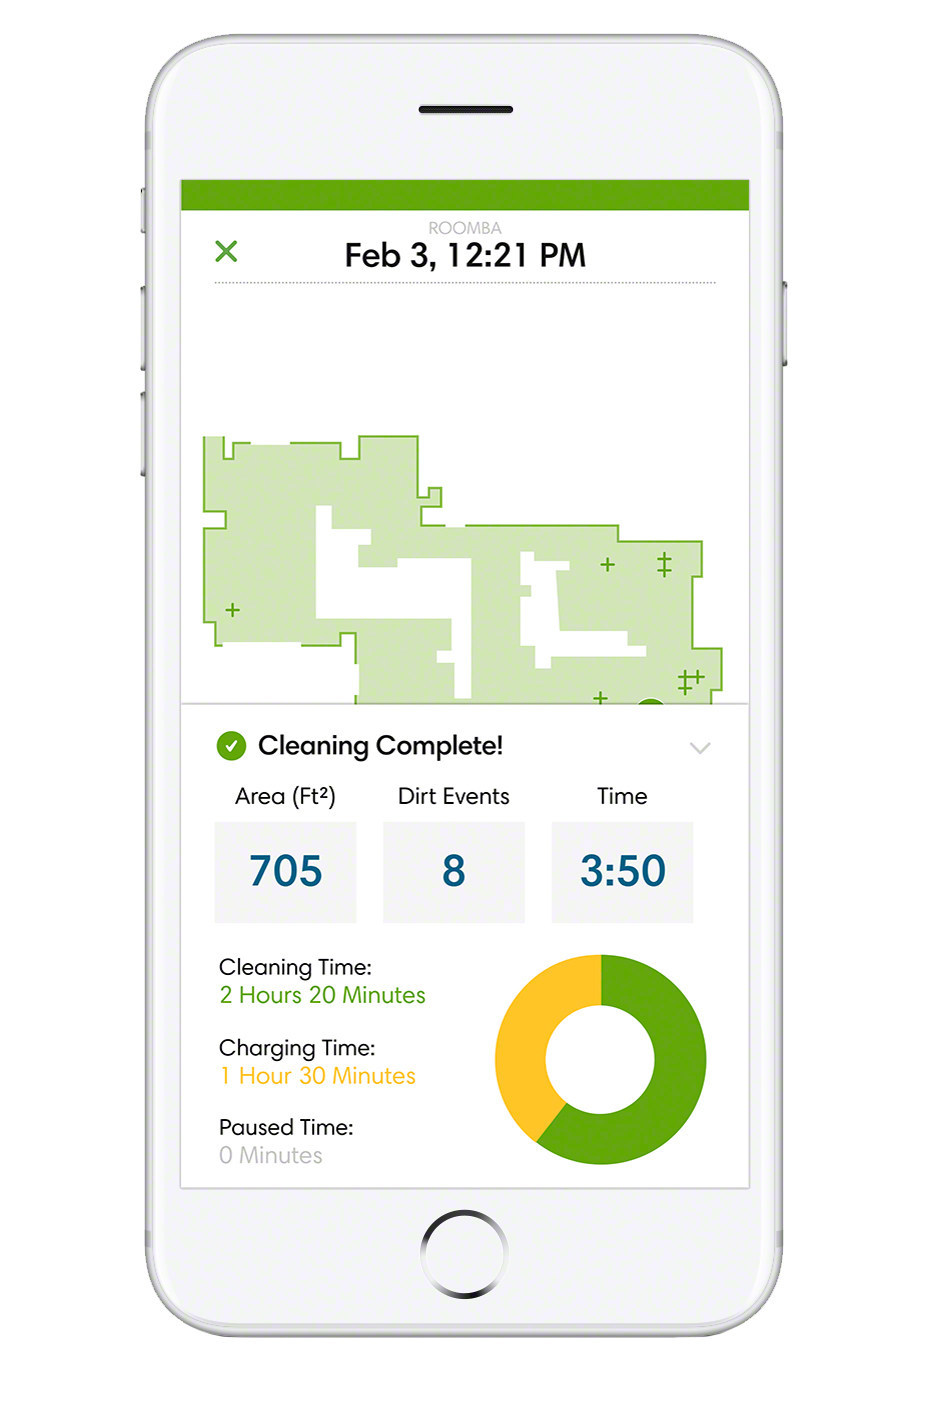 Clean Map(TM) reports for iRobot Roomba(R) 900 Series vacuuming robots are one of the exciting new additions to the iRobot HOME App, available on the App Store and Google Play. Customers can zoom and pan Clean Map reports in the History button to view cleaning coverage, as well as any areas of concentrated dirt on which the robot focused. Clean Map reports also provide statistics, such as area cleaned, job duration, and charging time for completed jobs.